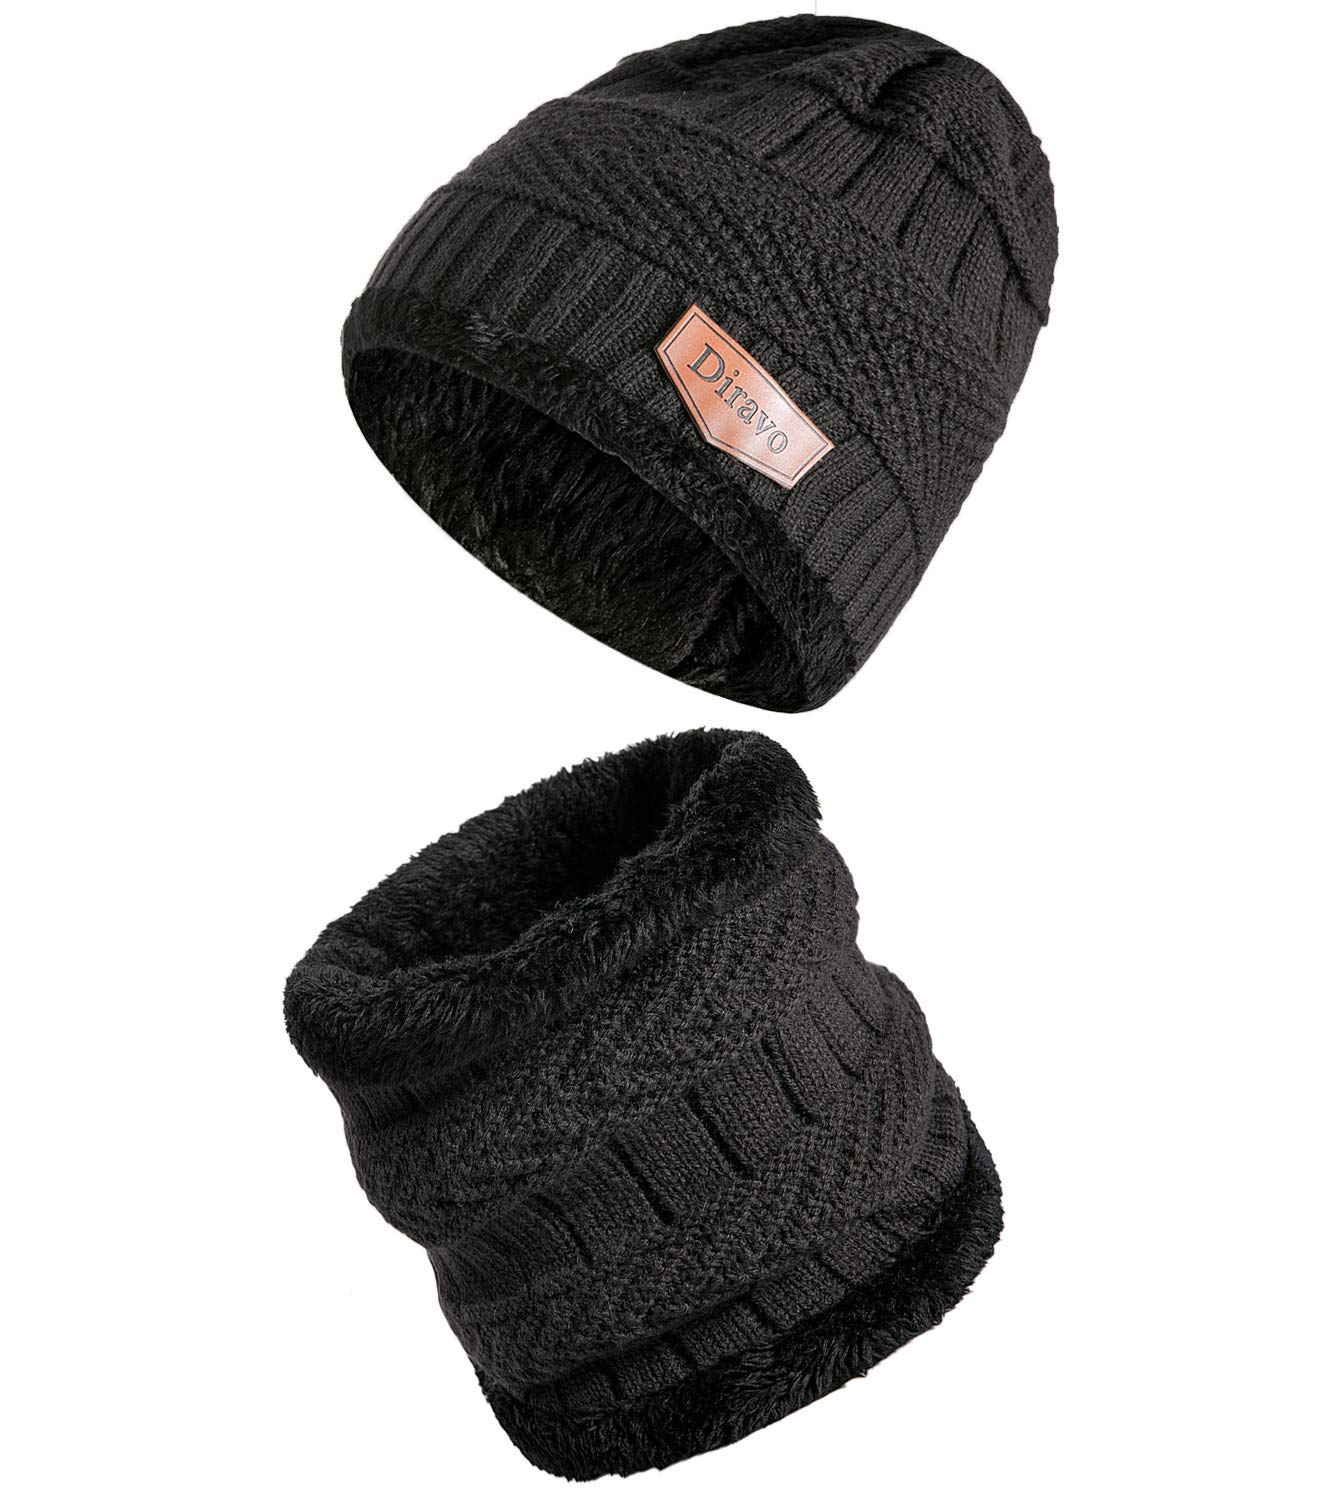 [2 Piece] Beanie Hat Scarf Set-Sloutchy Winter Warm Knit Skull Cap and Scarf for Women Men